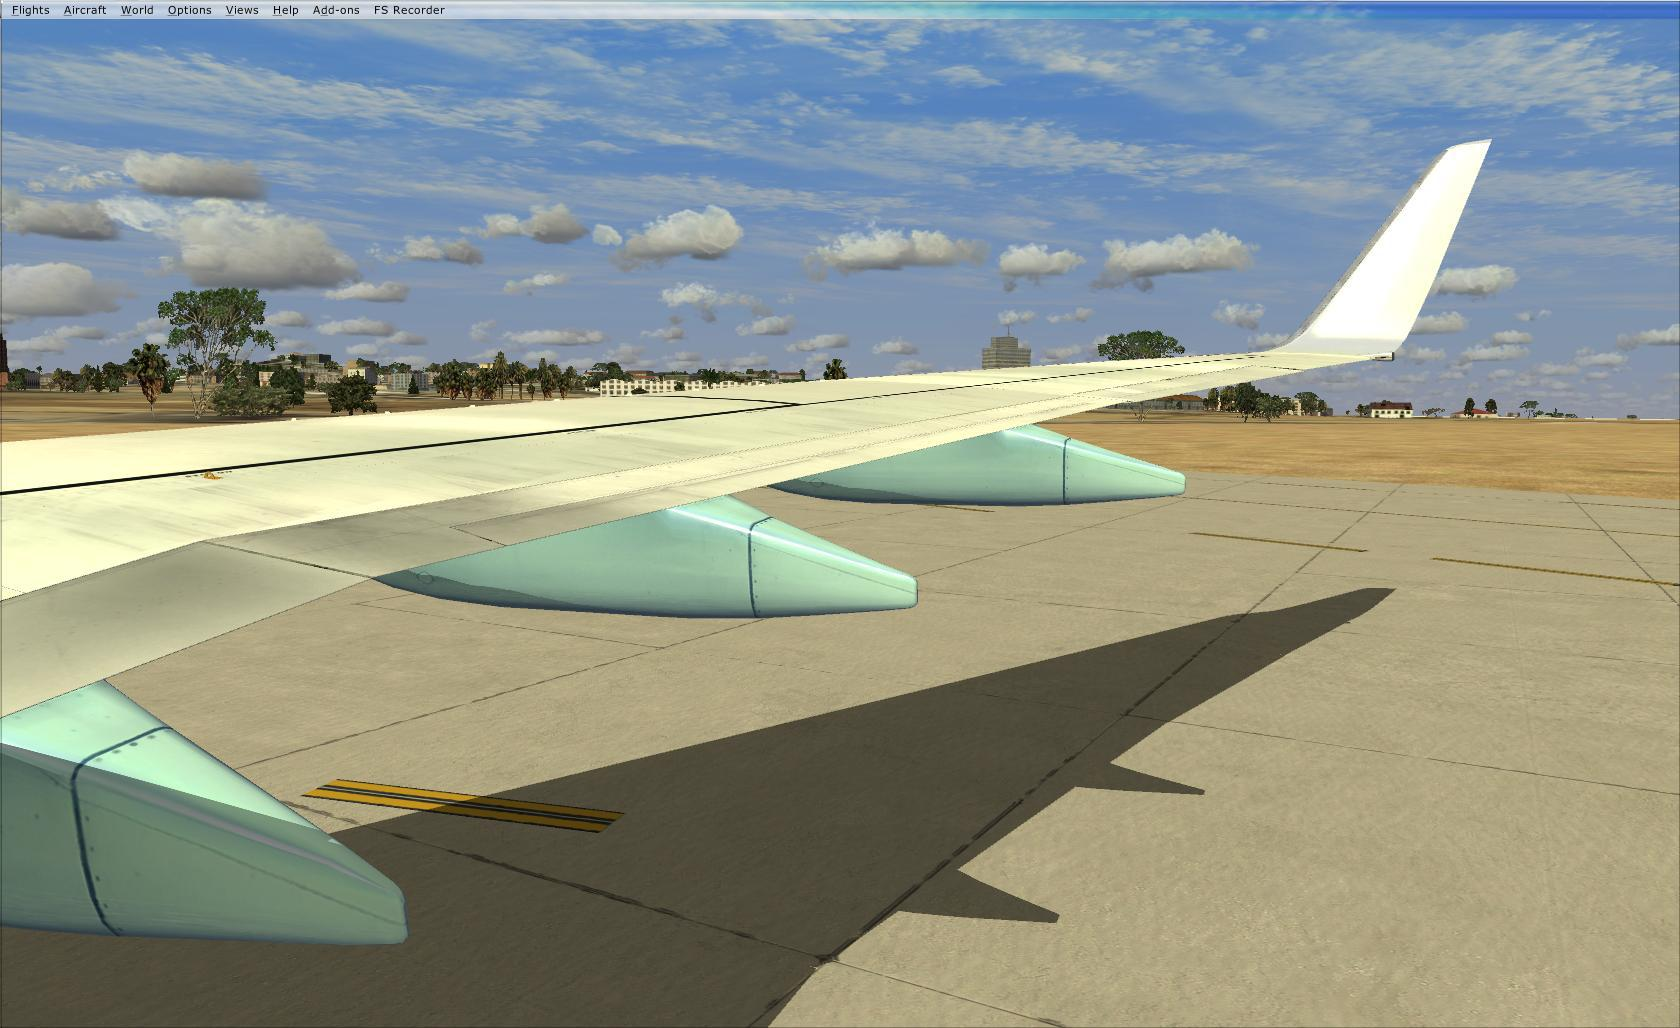 738 ngx cameroon air force 695032fsx2013071309424249